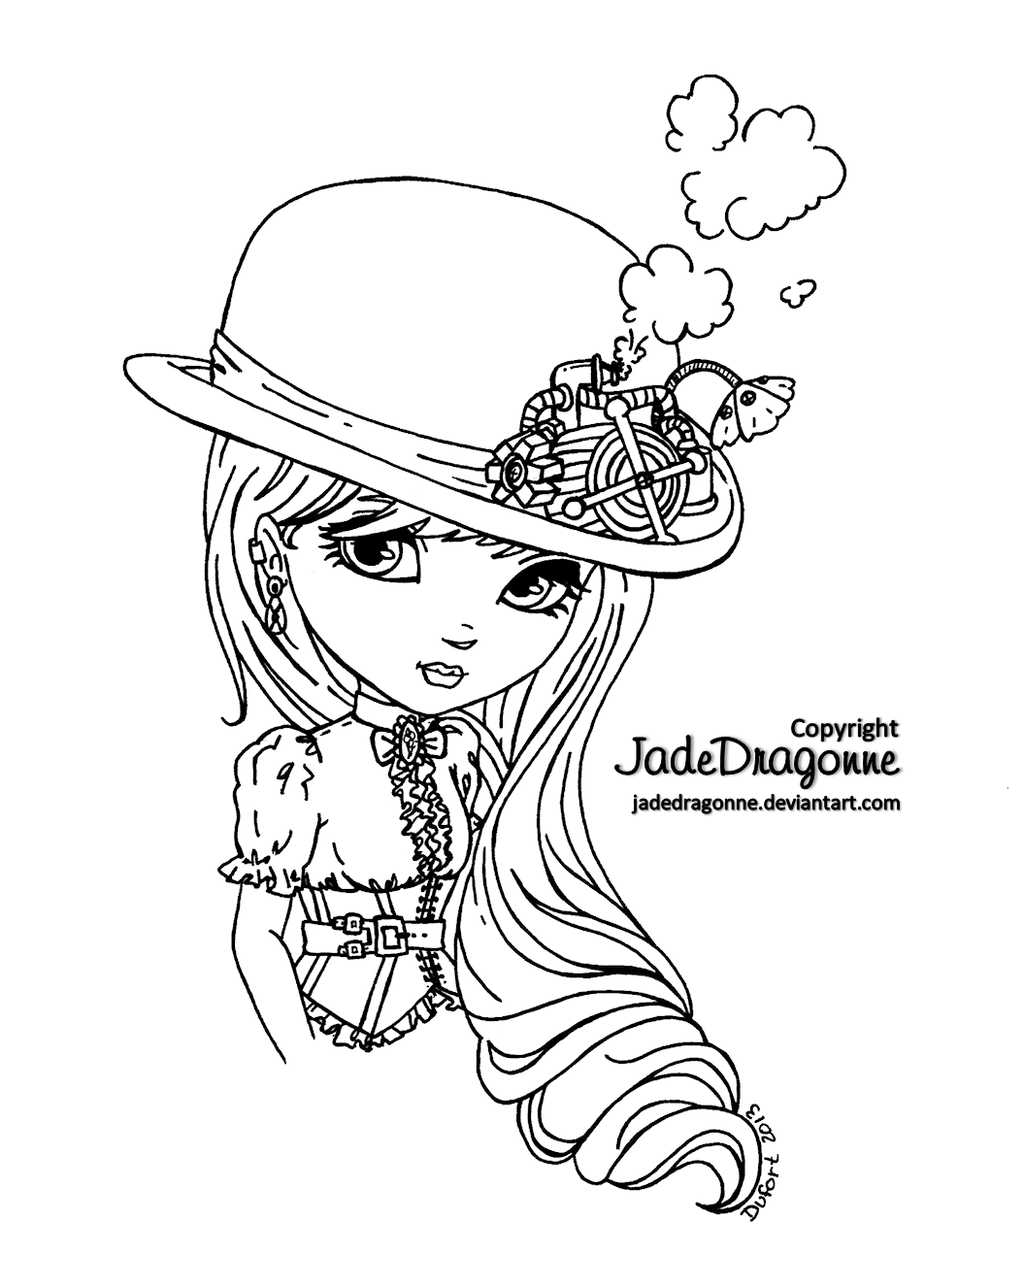 jadedragonne deviantart coloring pages - photo#30